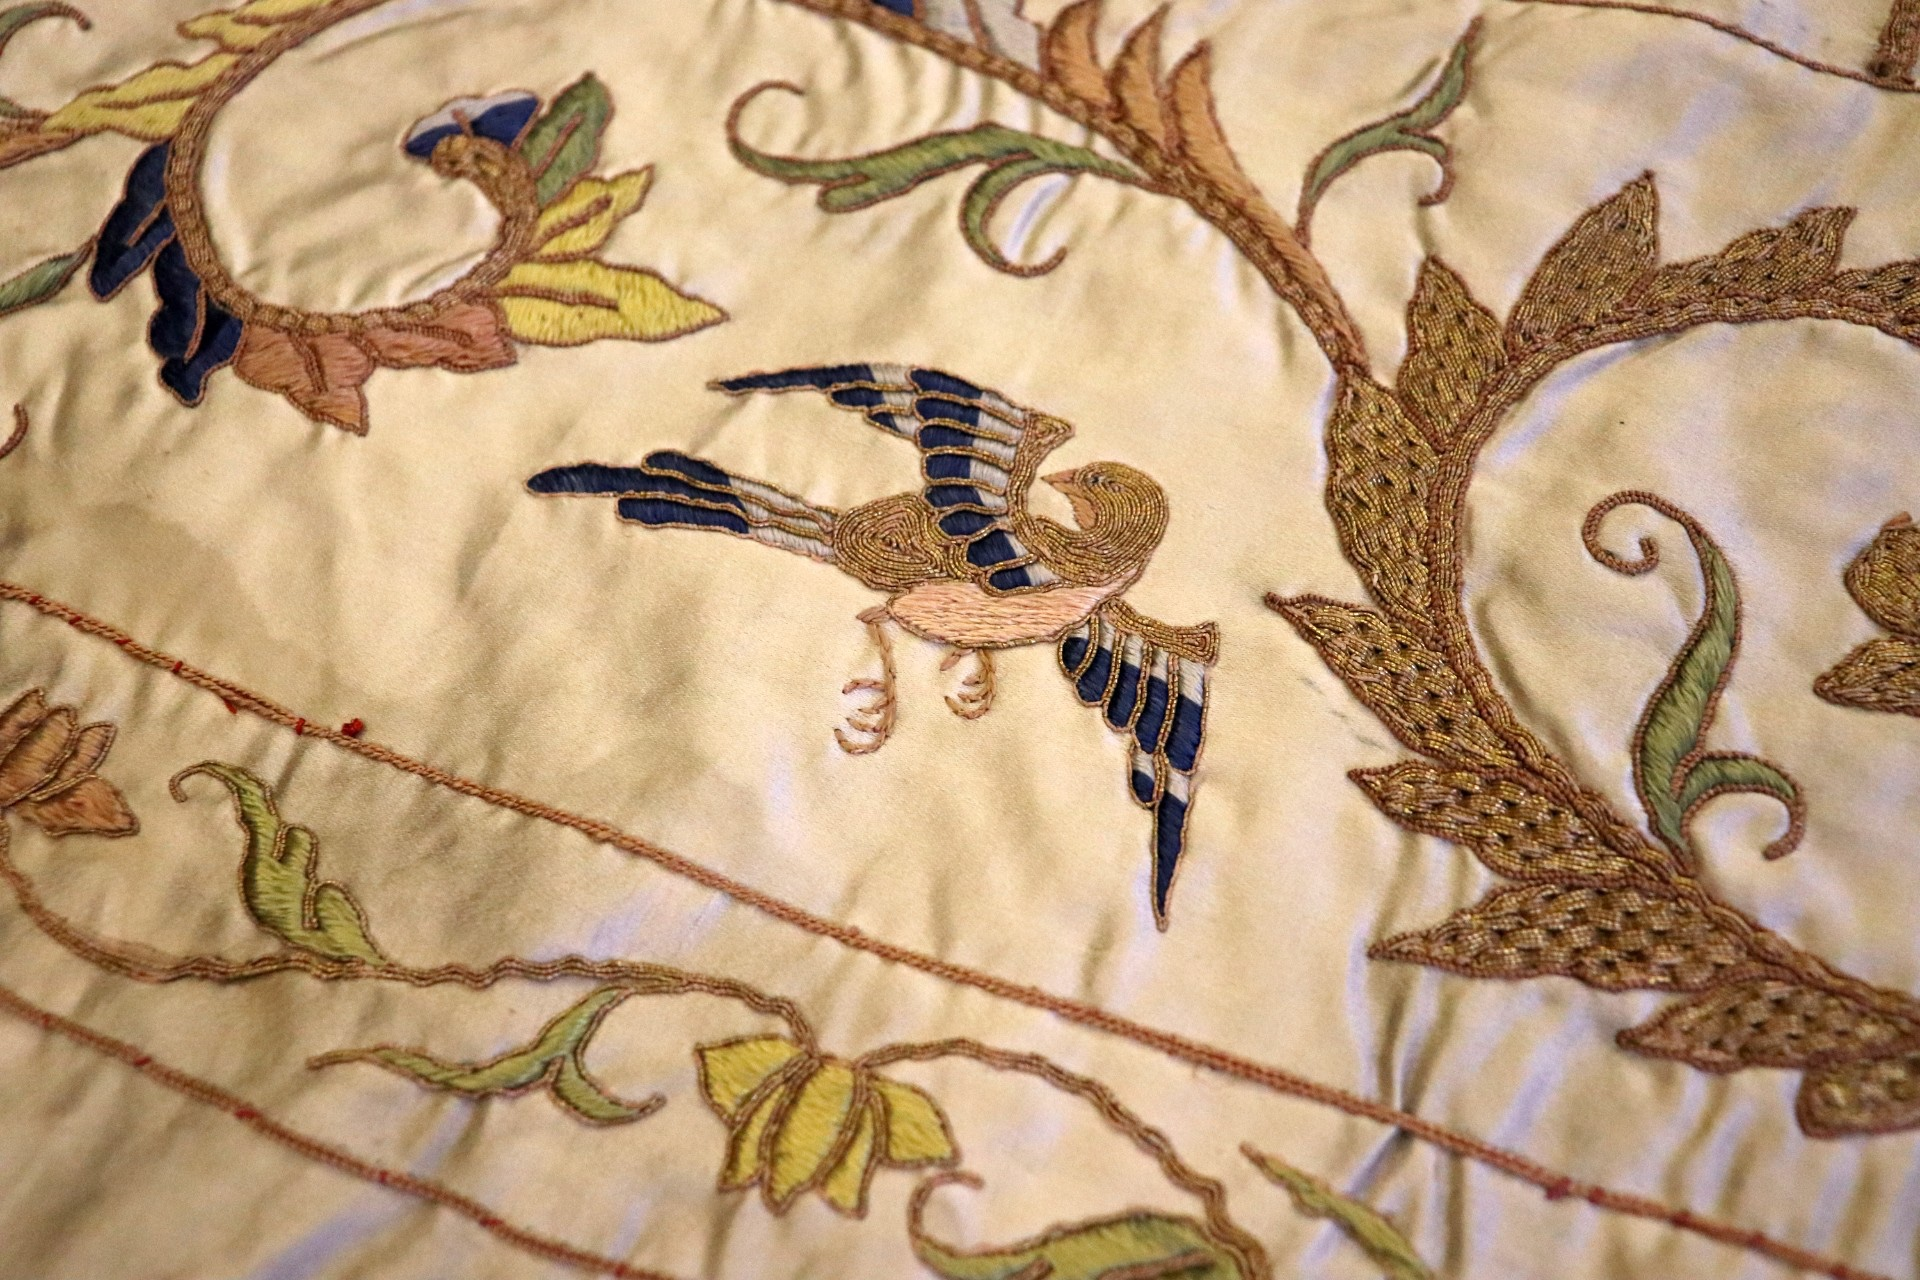 close-up photograph of embroidered bird and foliage on sheet of fabric